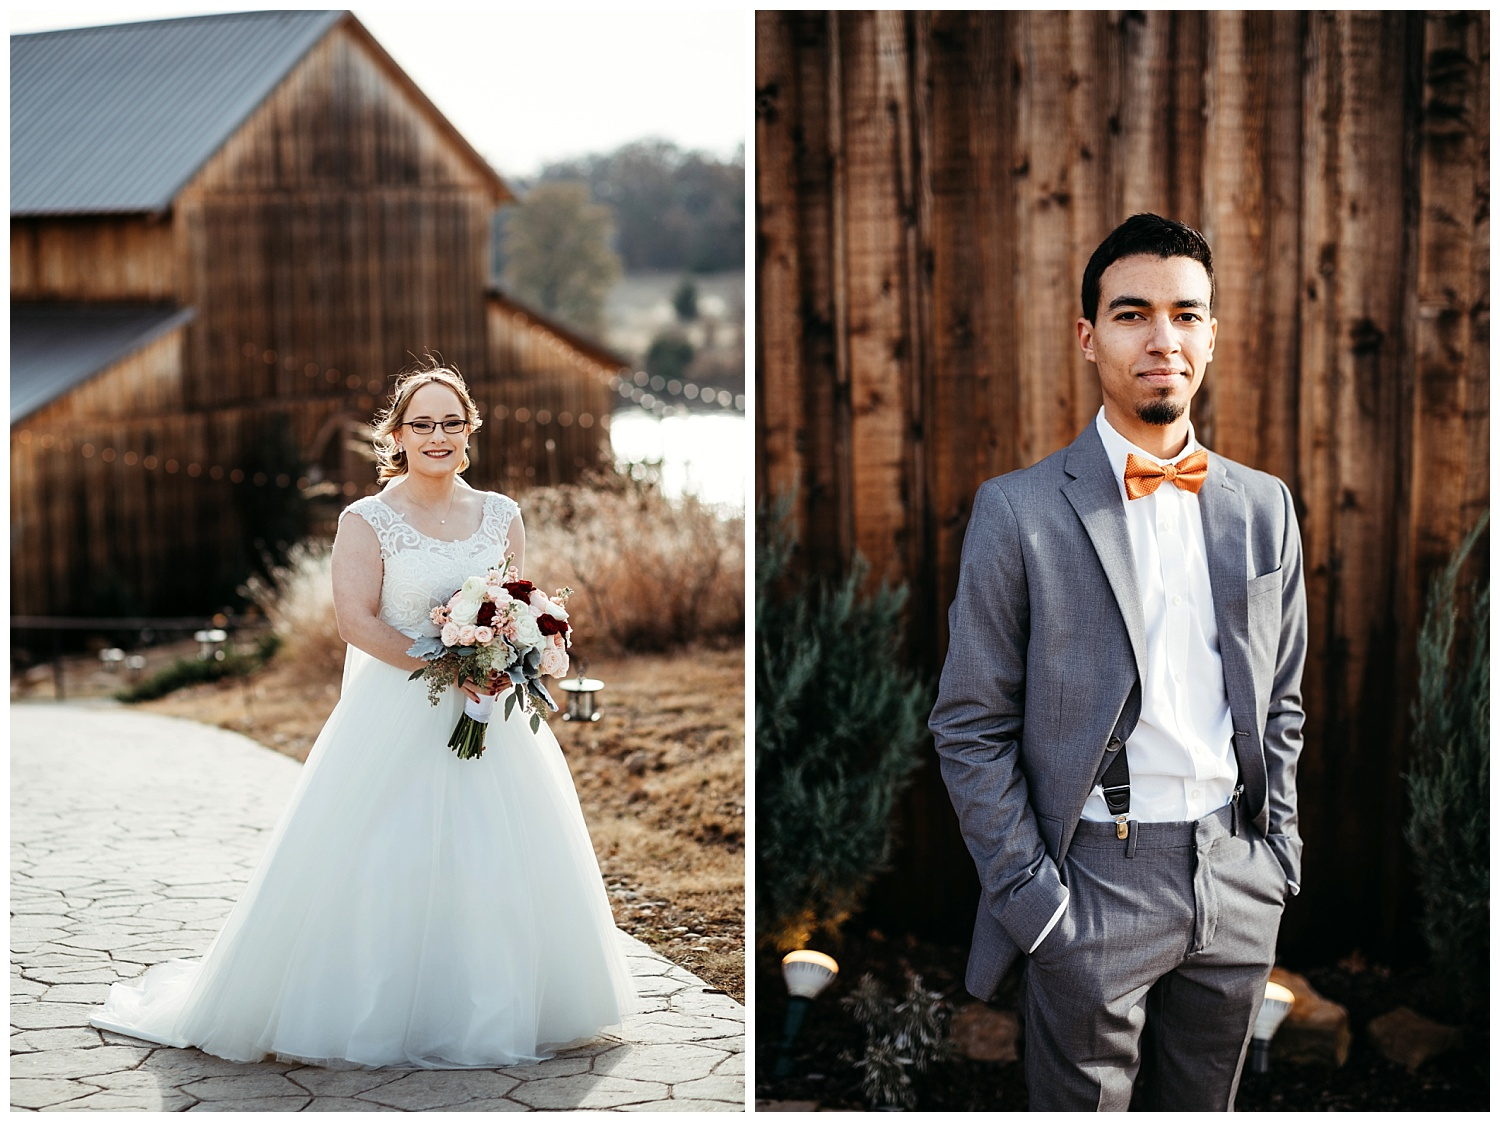 Beautiful Bride and Groom photos at the barn venue.